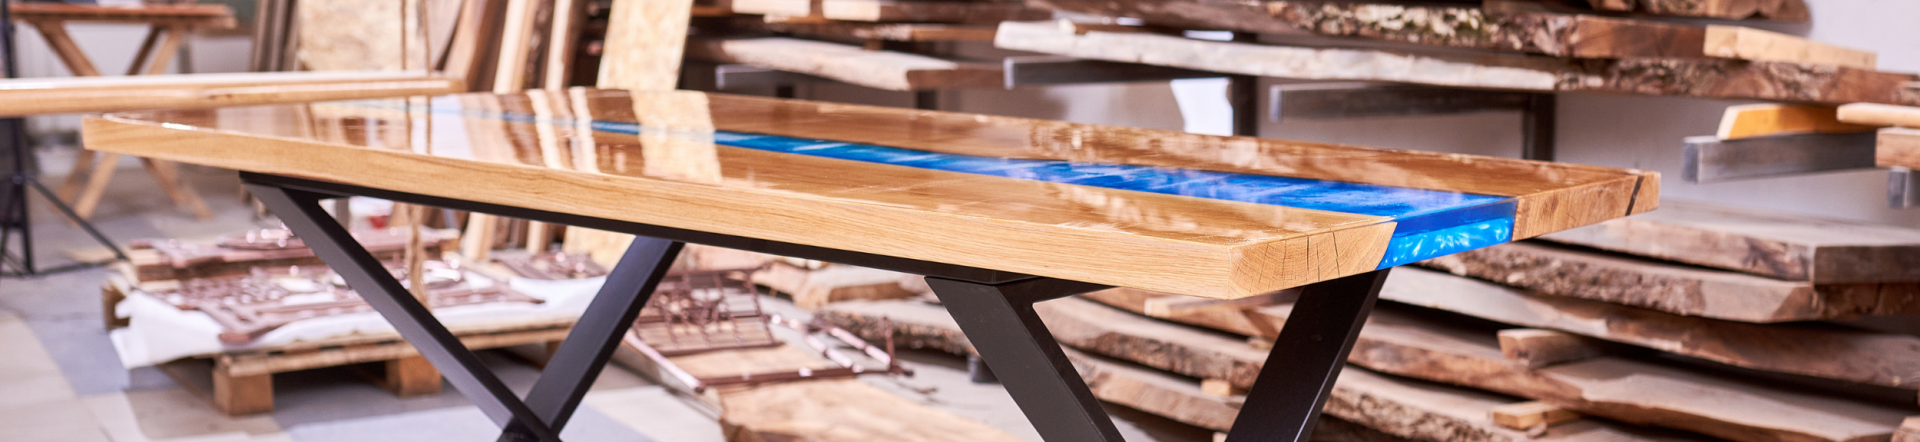 Epoxy tafel voorbeeld river table